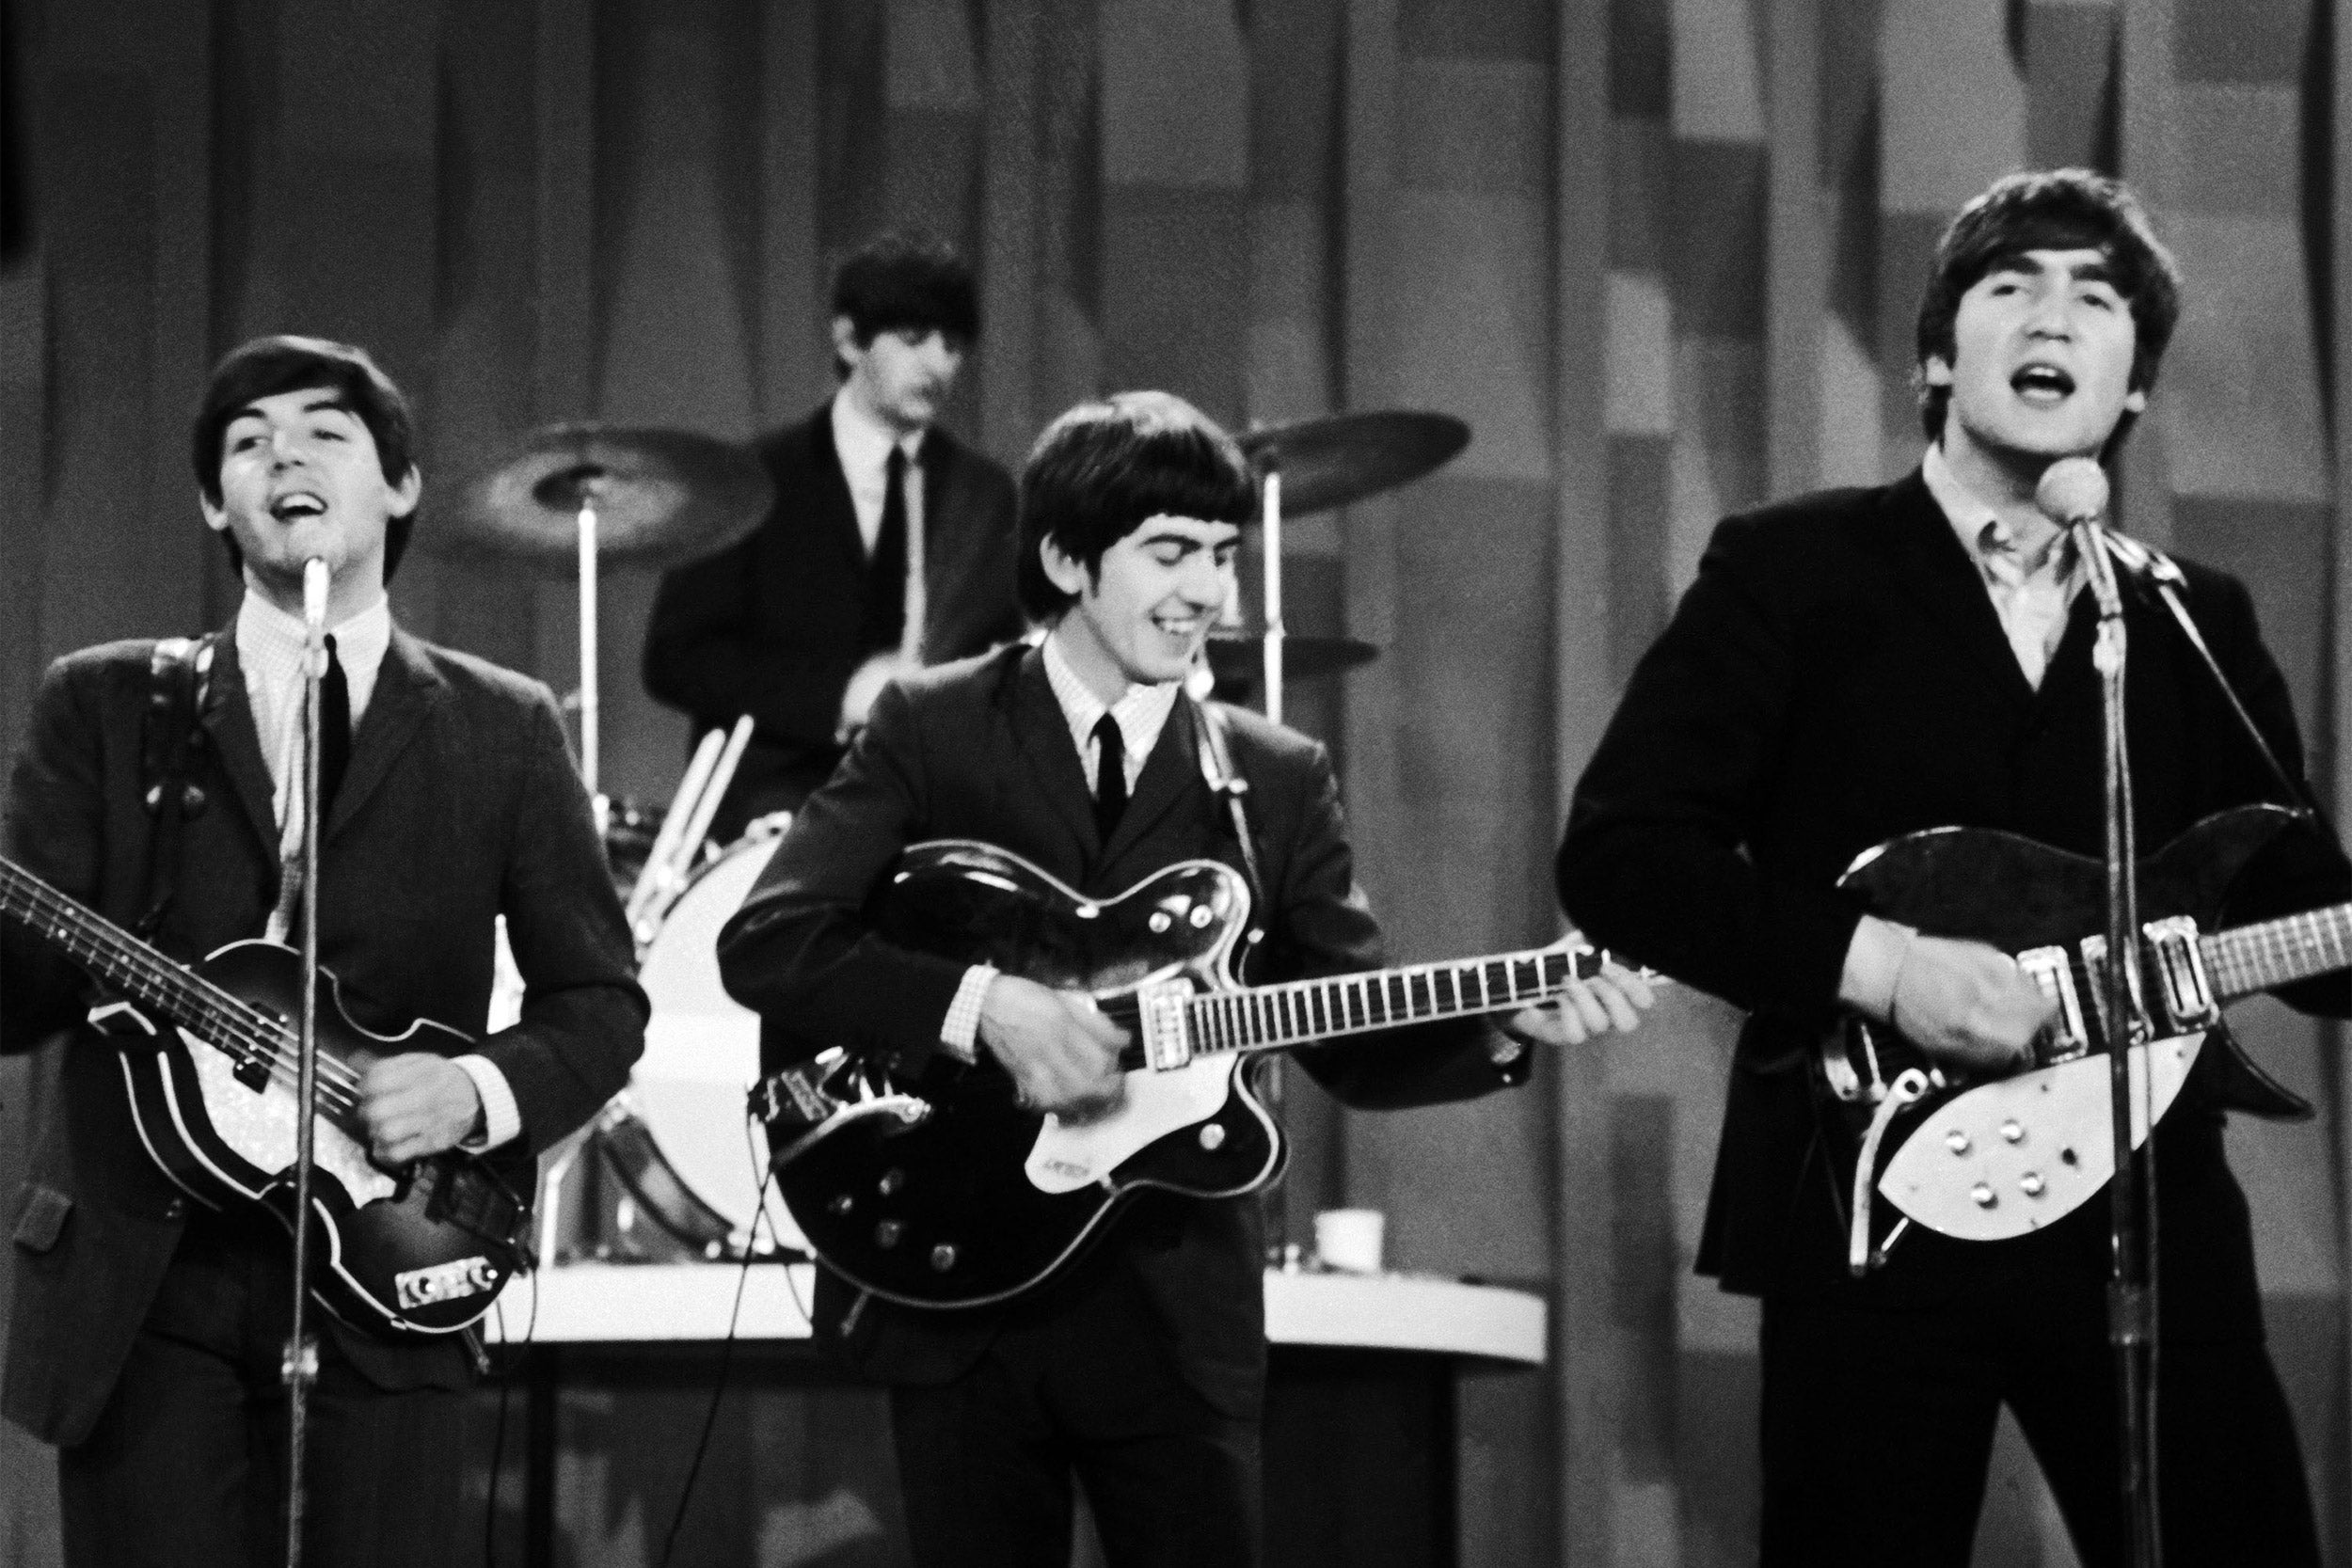 The Beatles performing on Ed Sullivan show.